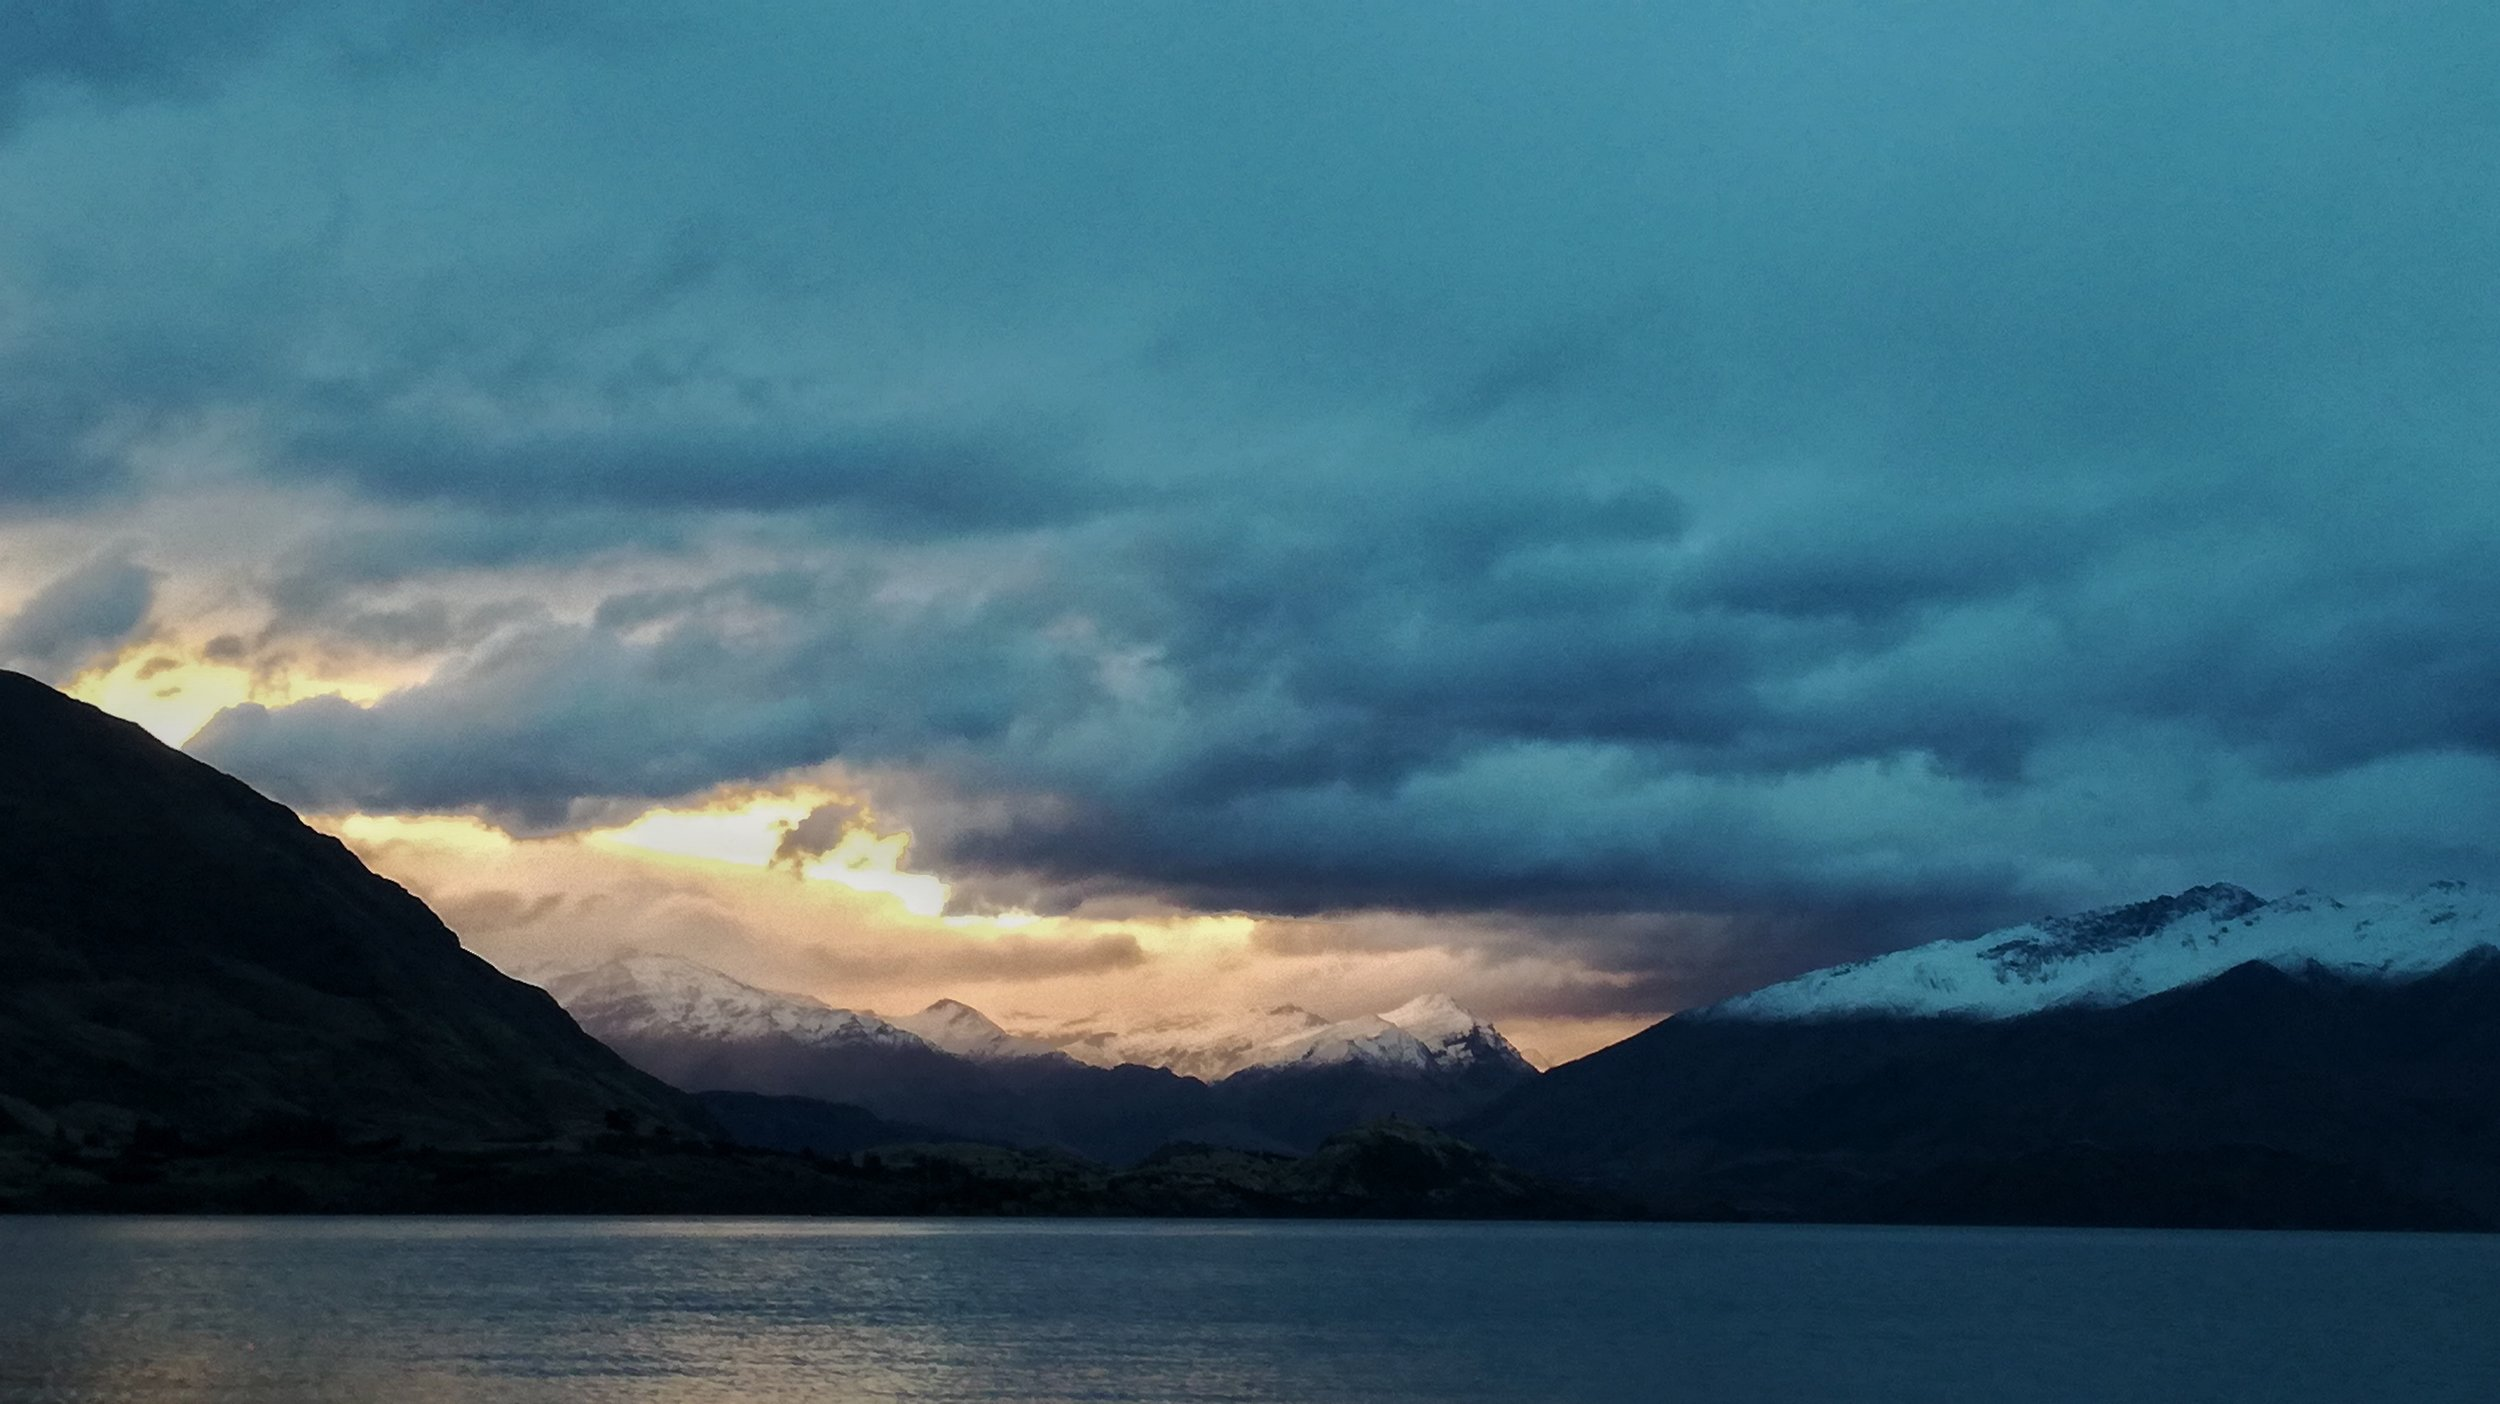 The sunset over Lake Wanaka was truly incredible!